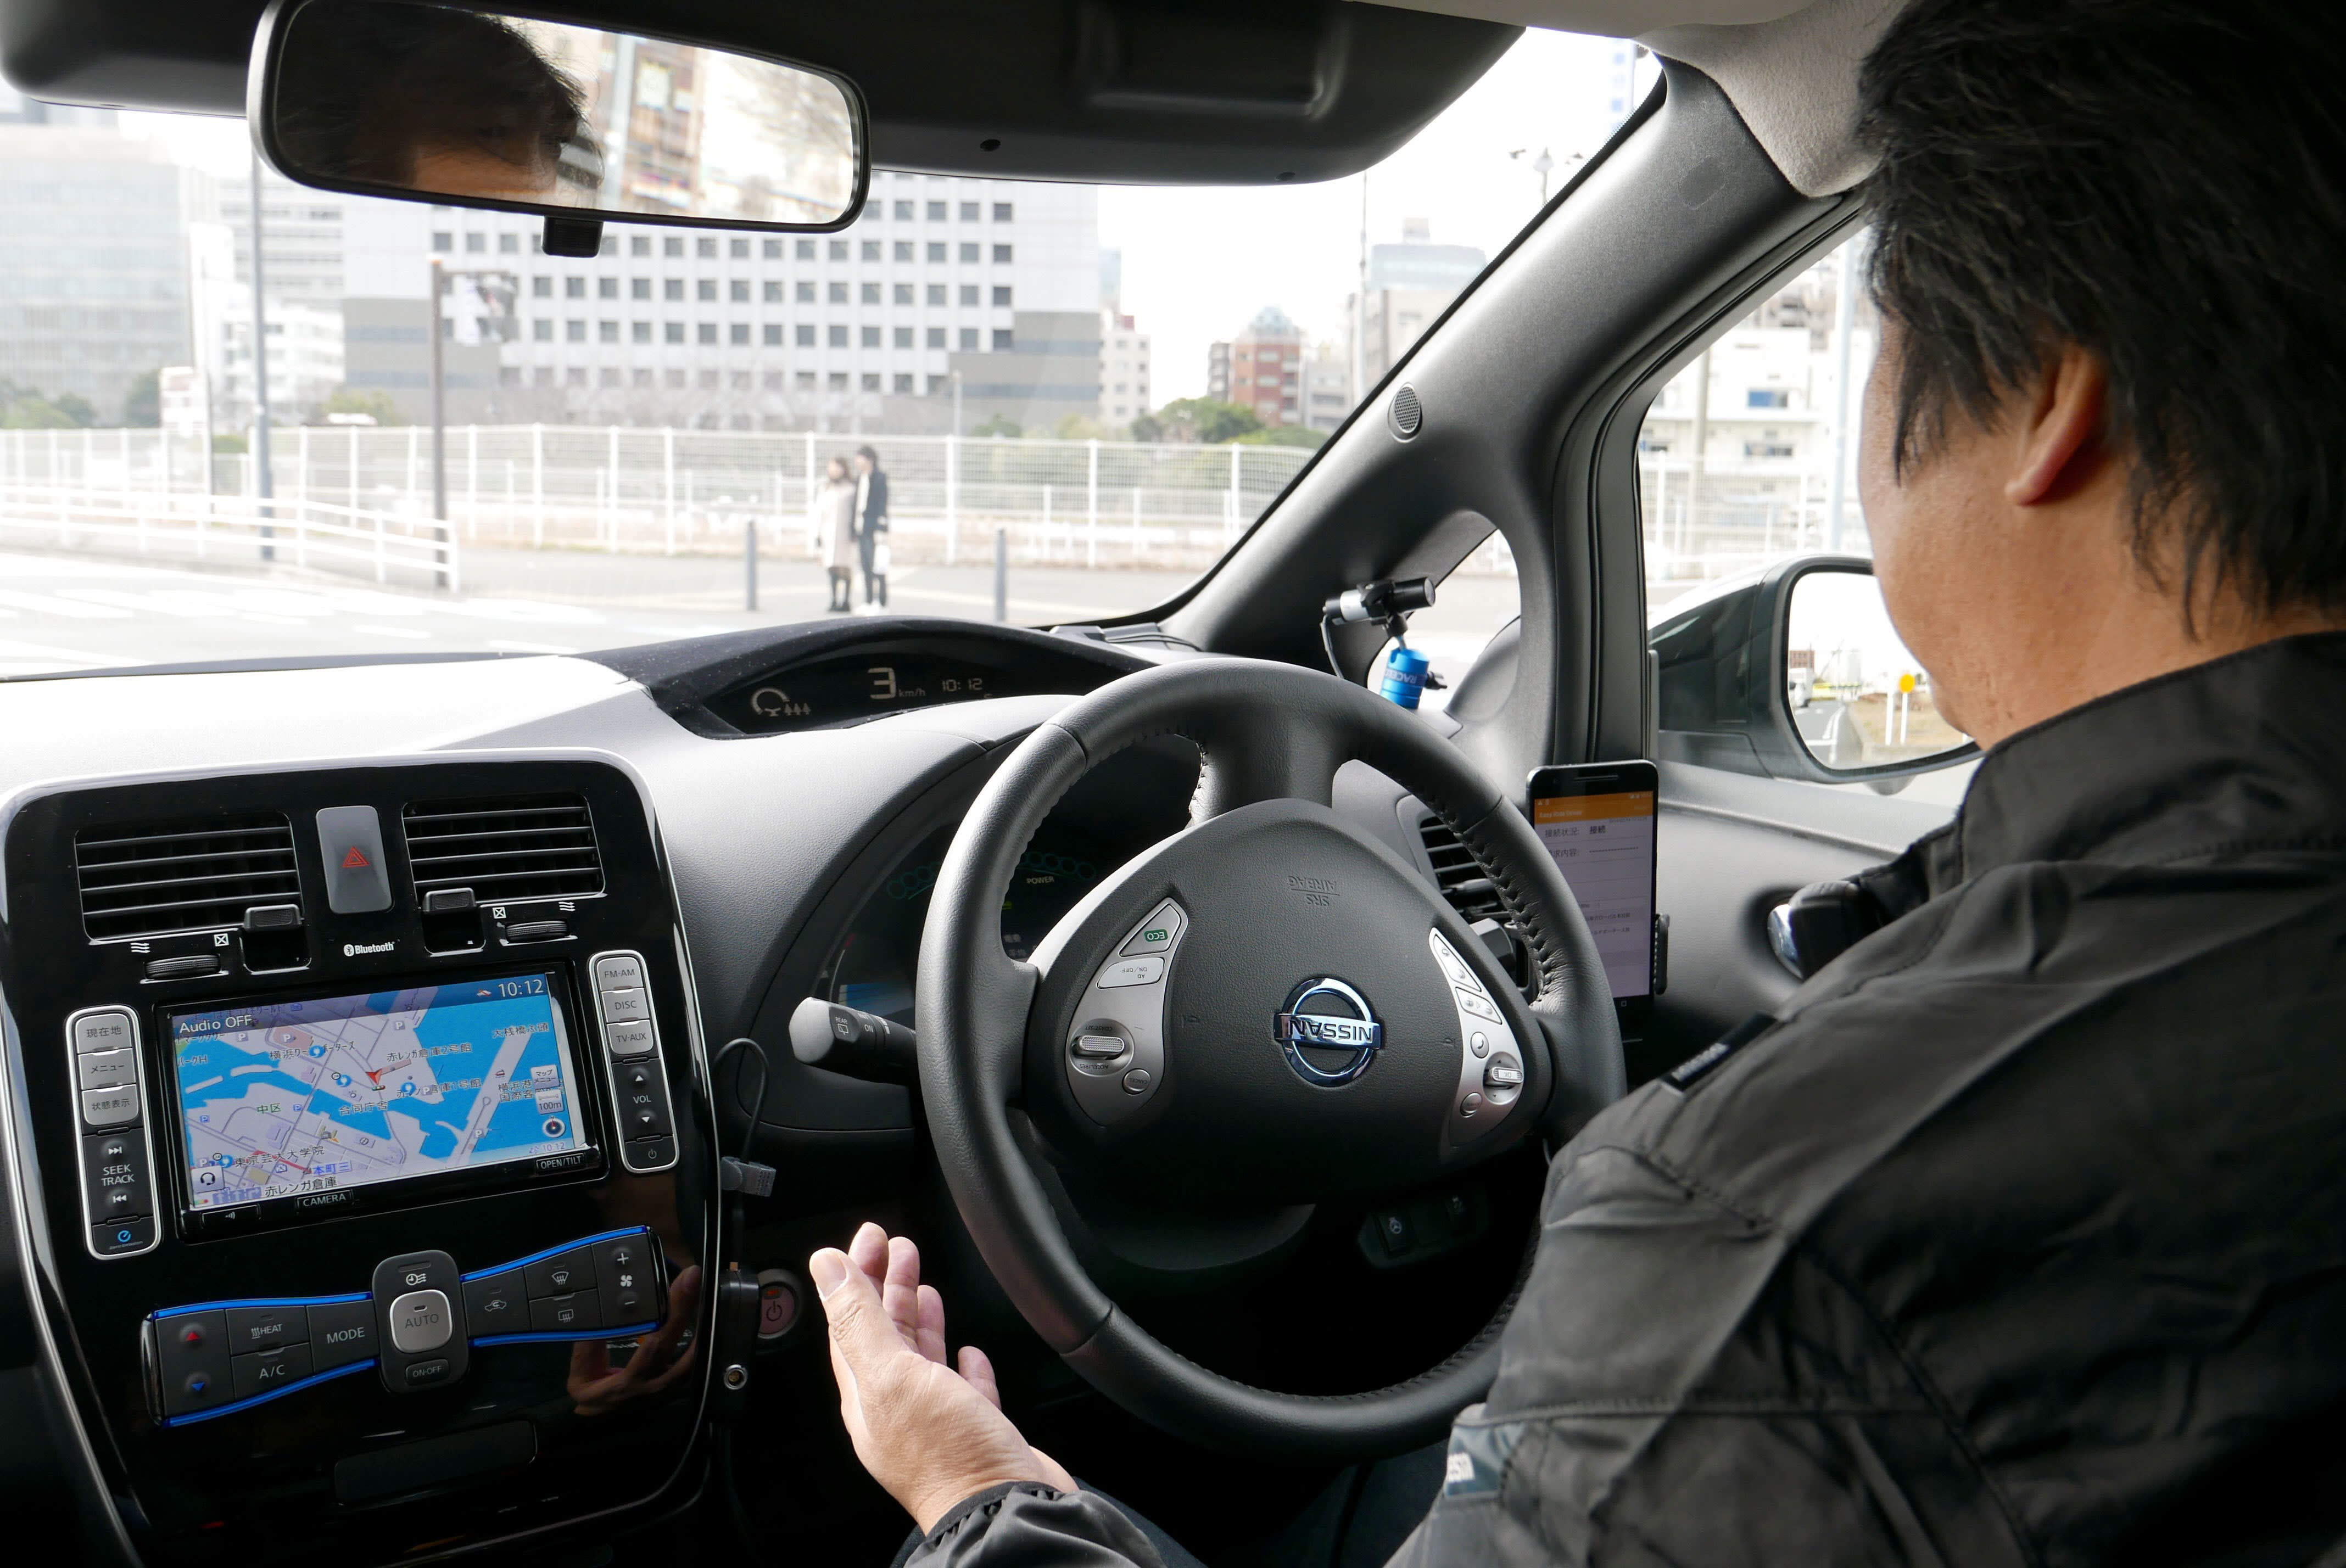 Japan to place accident liability on self-driving car owners